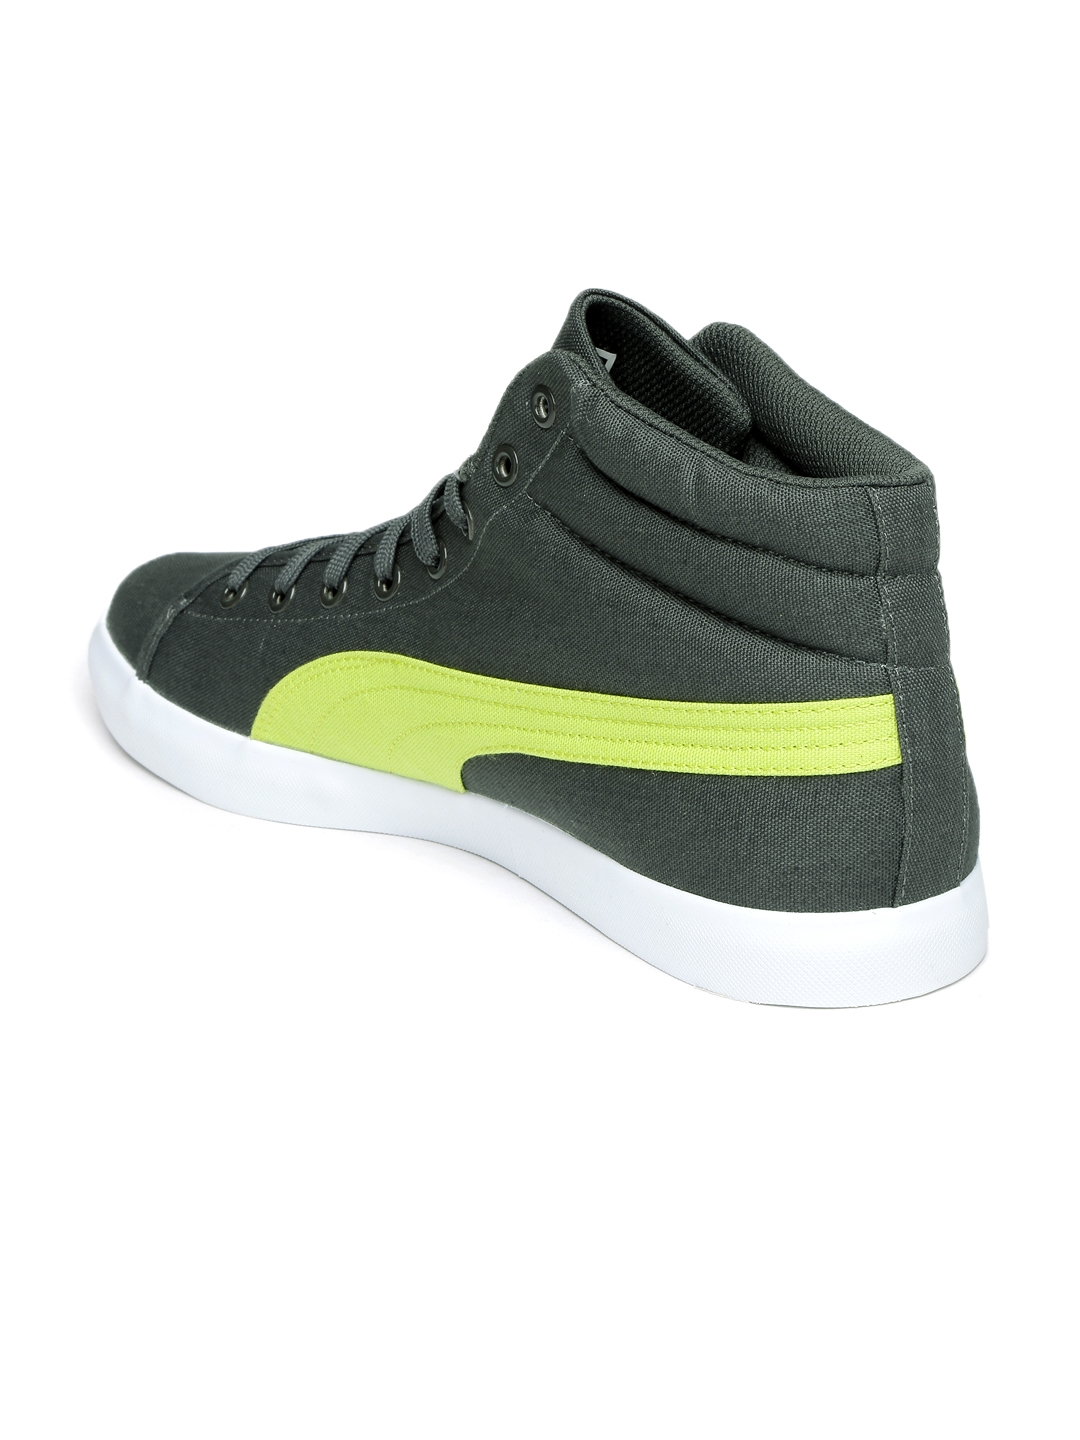 a0efd639f5dfaa Buy PUMA Unisex Grey Titan Canvas Mid DP Sneakers - Casual Shoes for ...